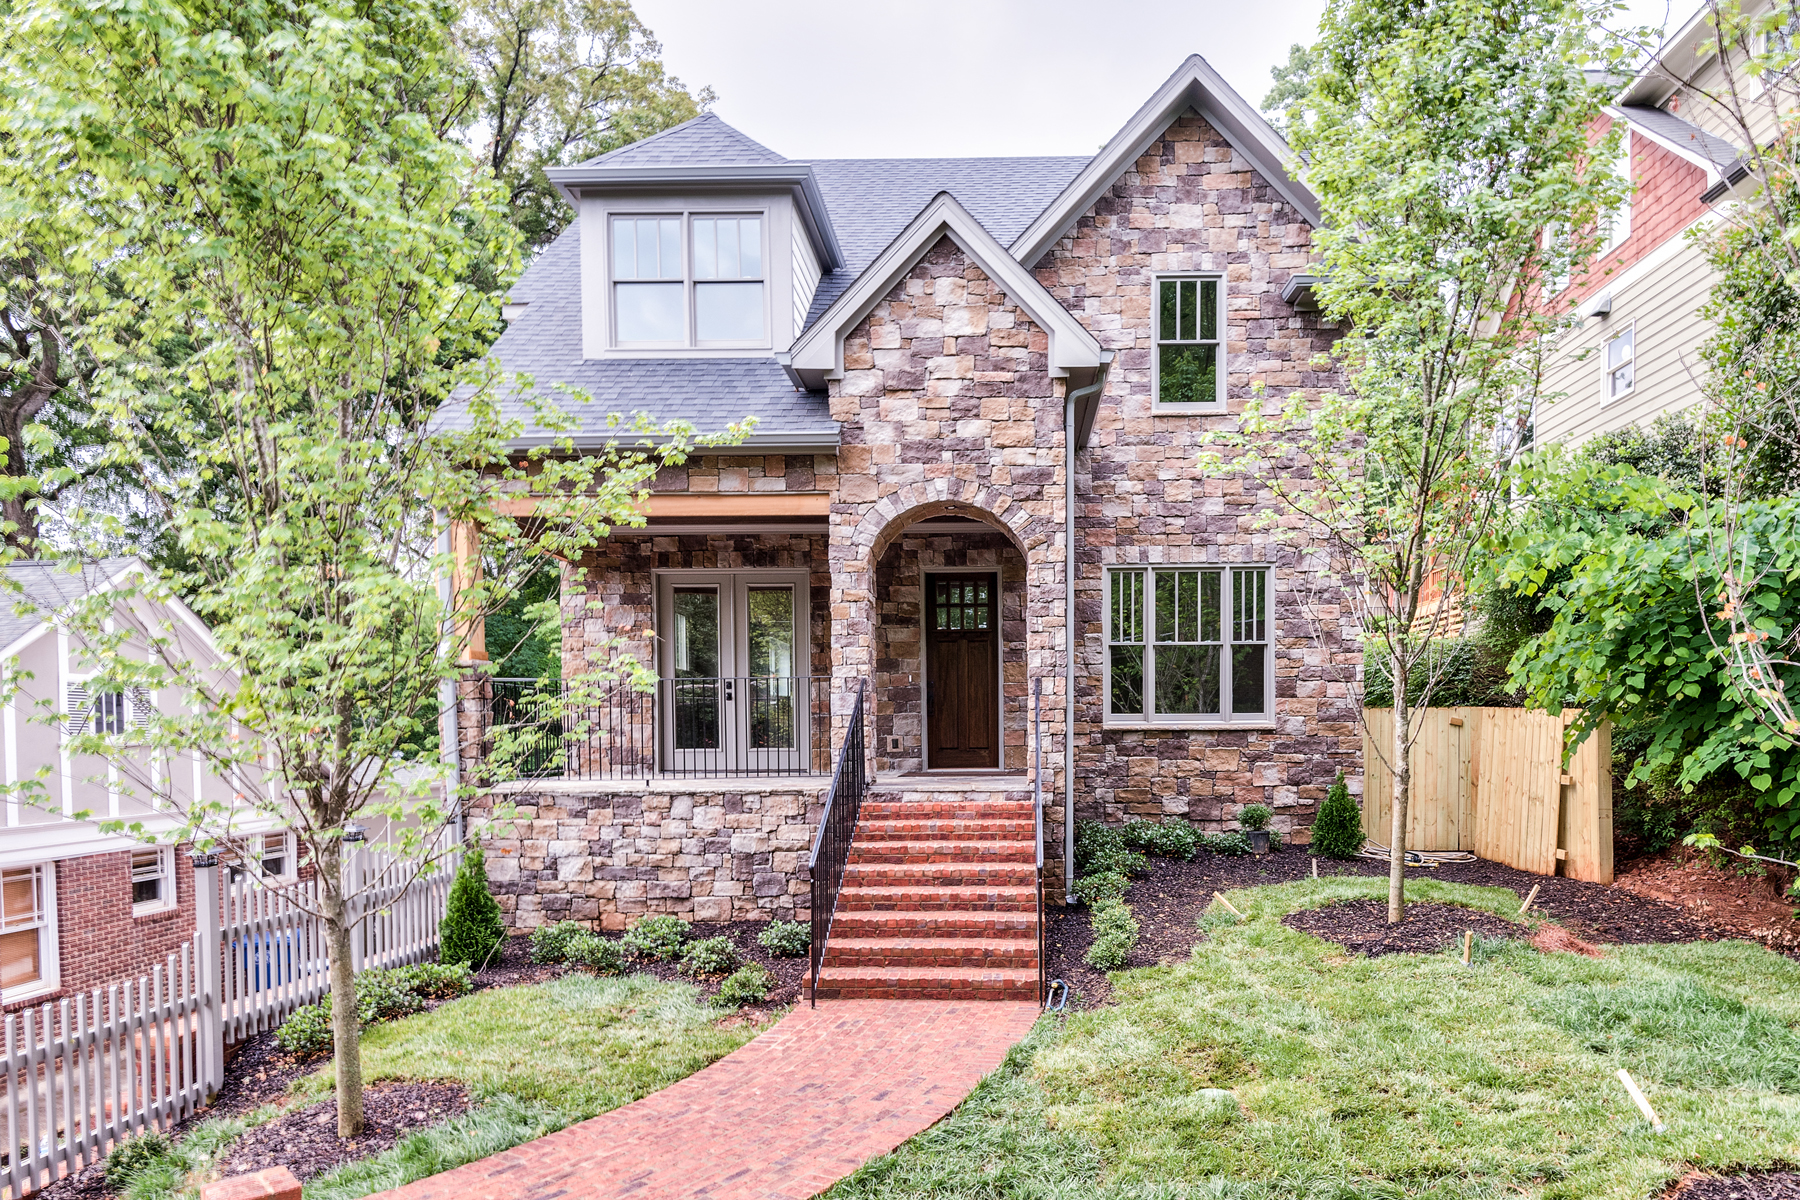 Single Family Home for Active at New Traditional Home In Morningside 1065 Amsterdam Avenue NE Atlanta, Georgia 30306 United States